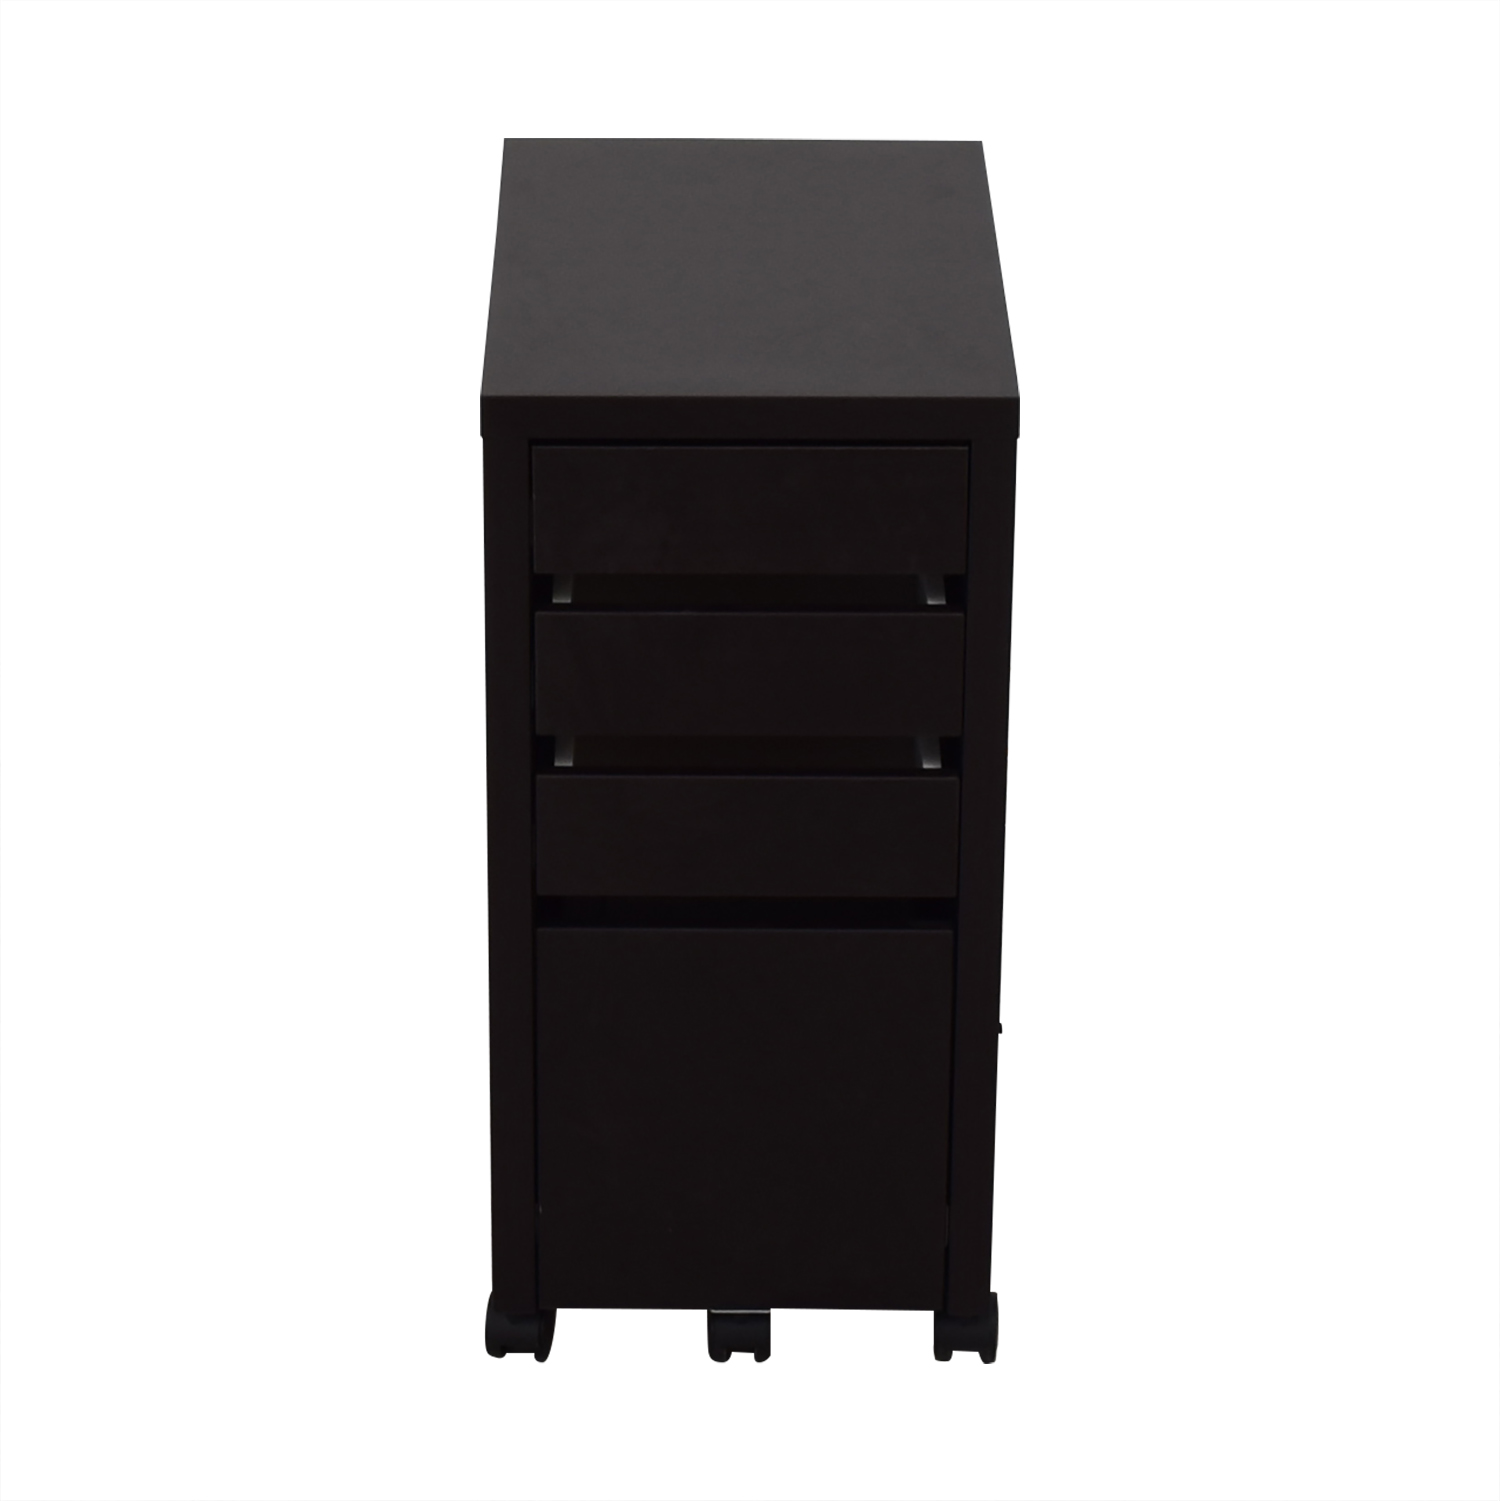 free shipping a6f36 89029 74% OFF - Staples Staples Black File Cabinet / Storage